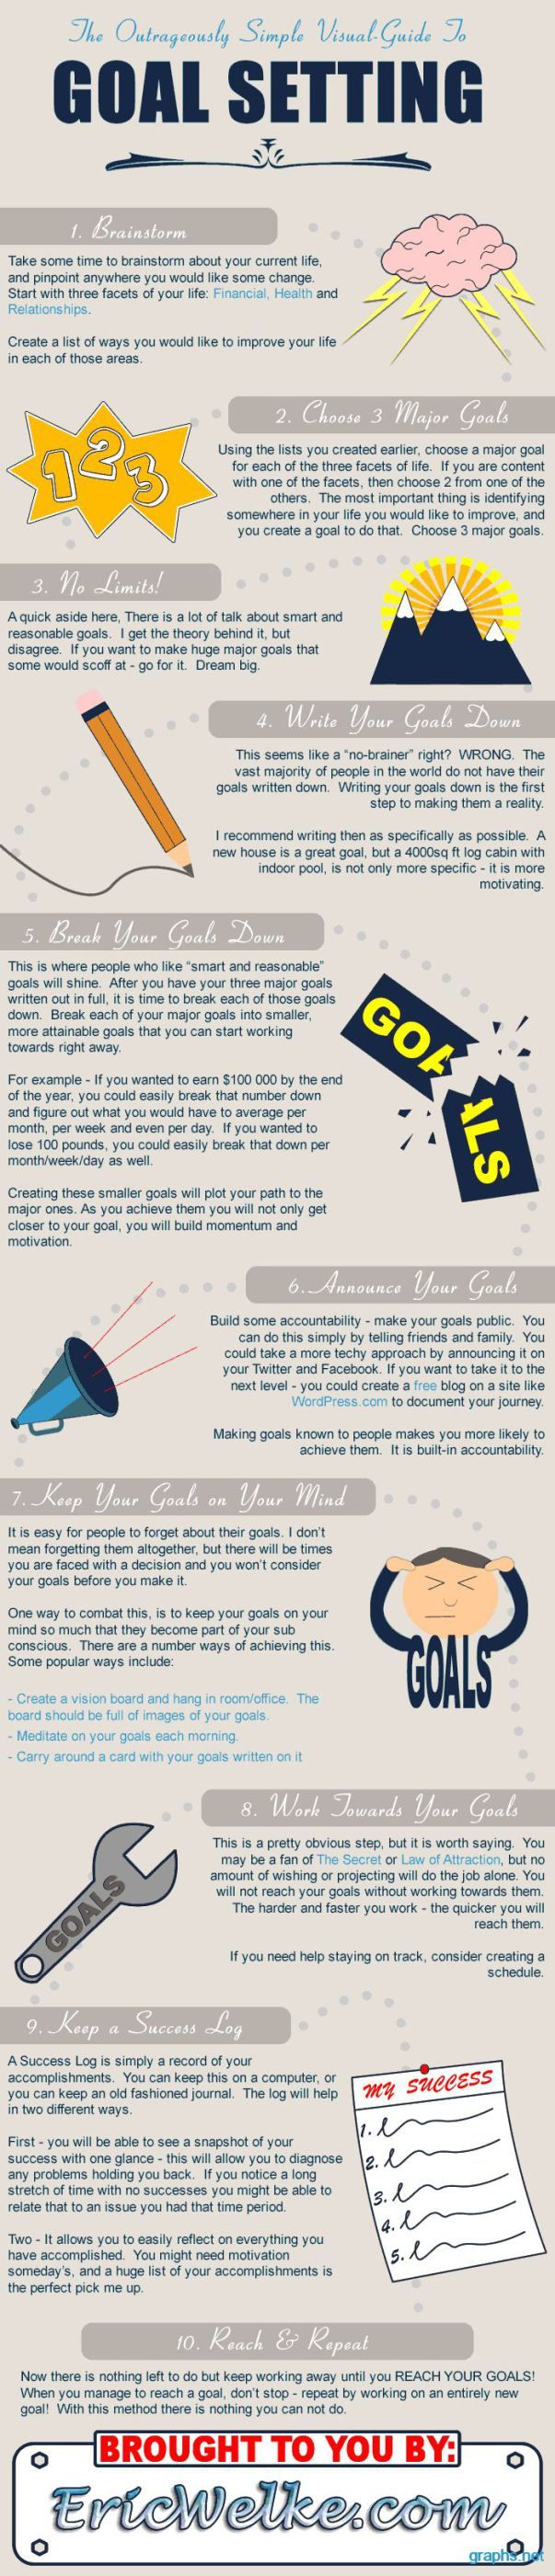 Goal Setting and New Years Resolutions